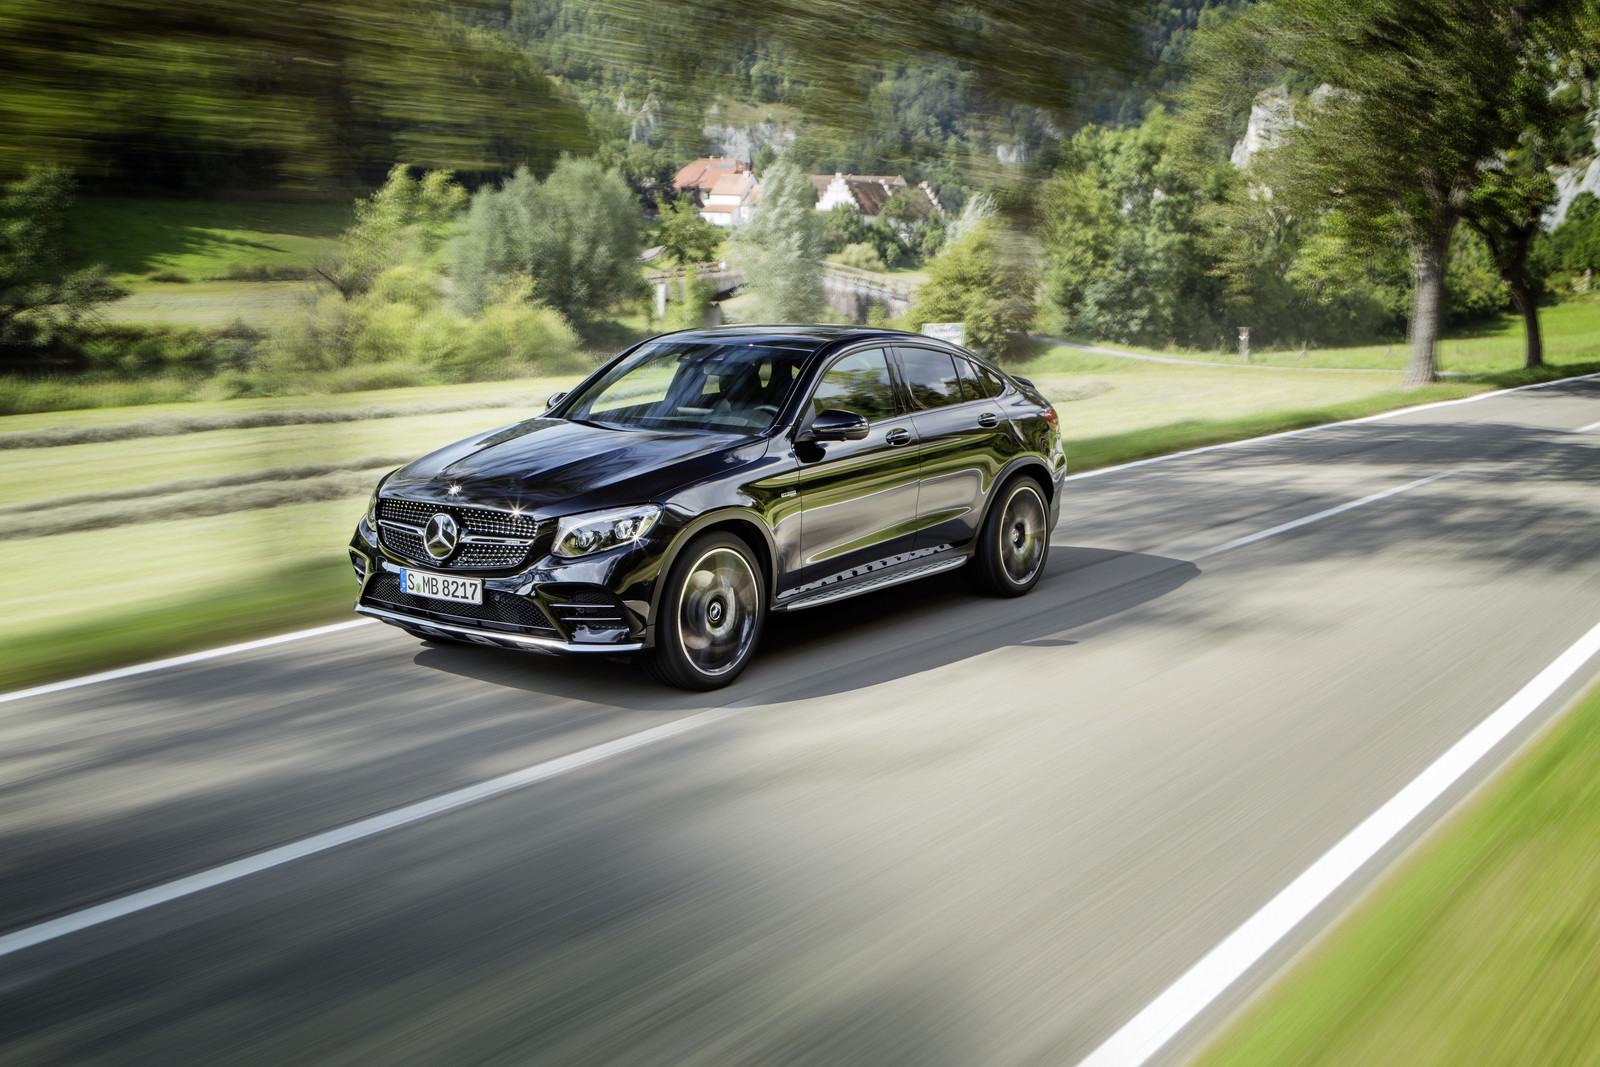 Foto de Mercedes-AMG GLC 43 4MATIC Coupé (9/24)